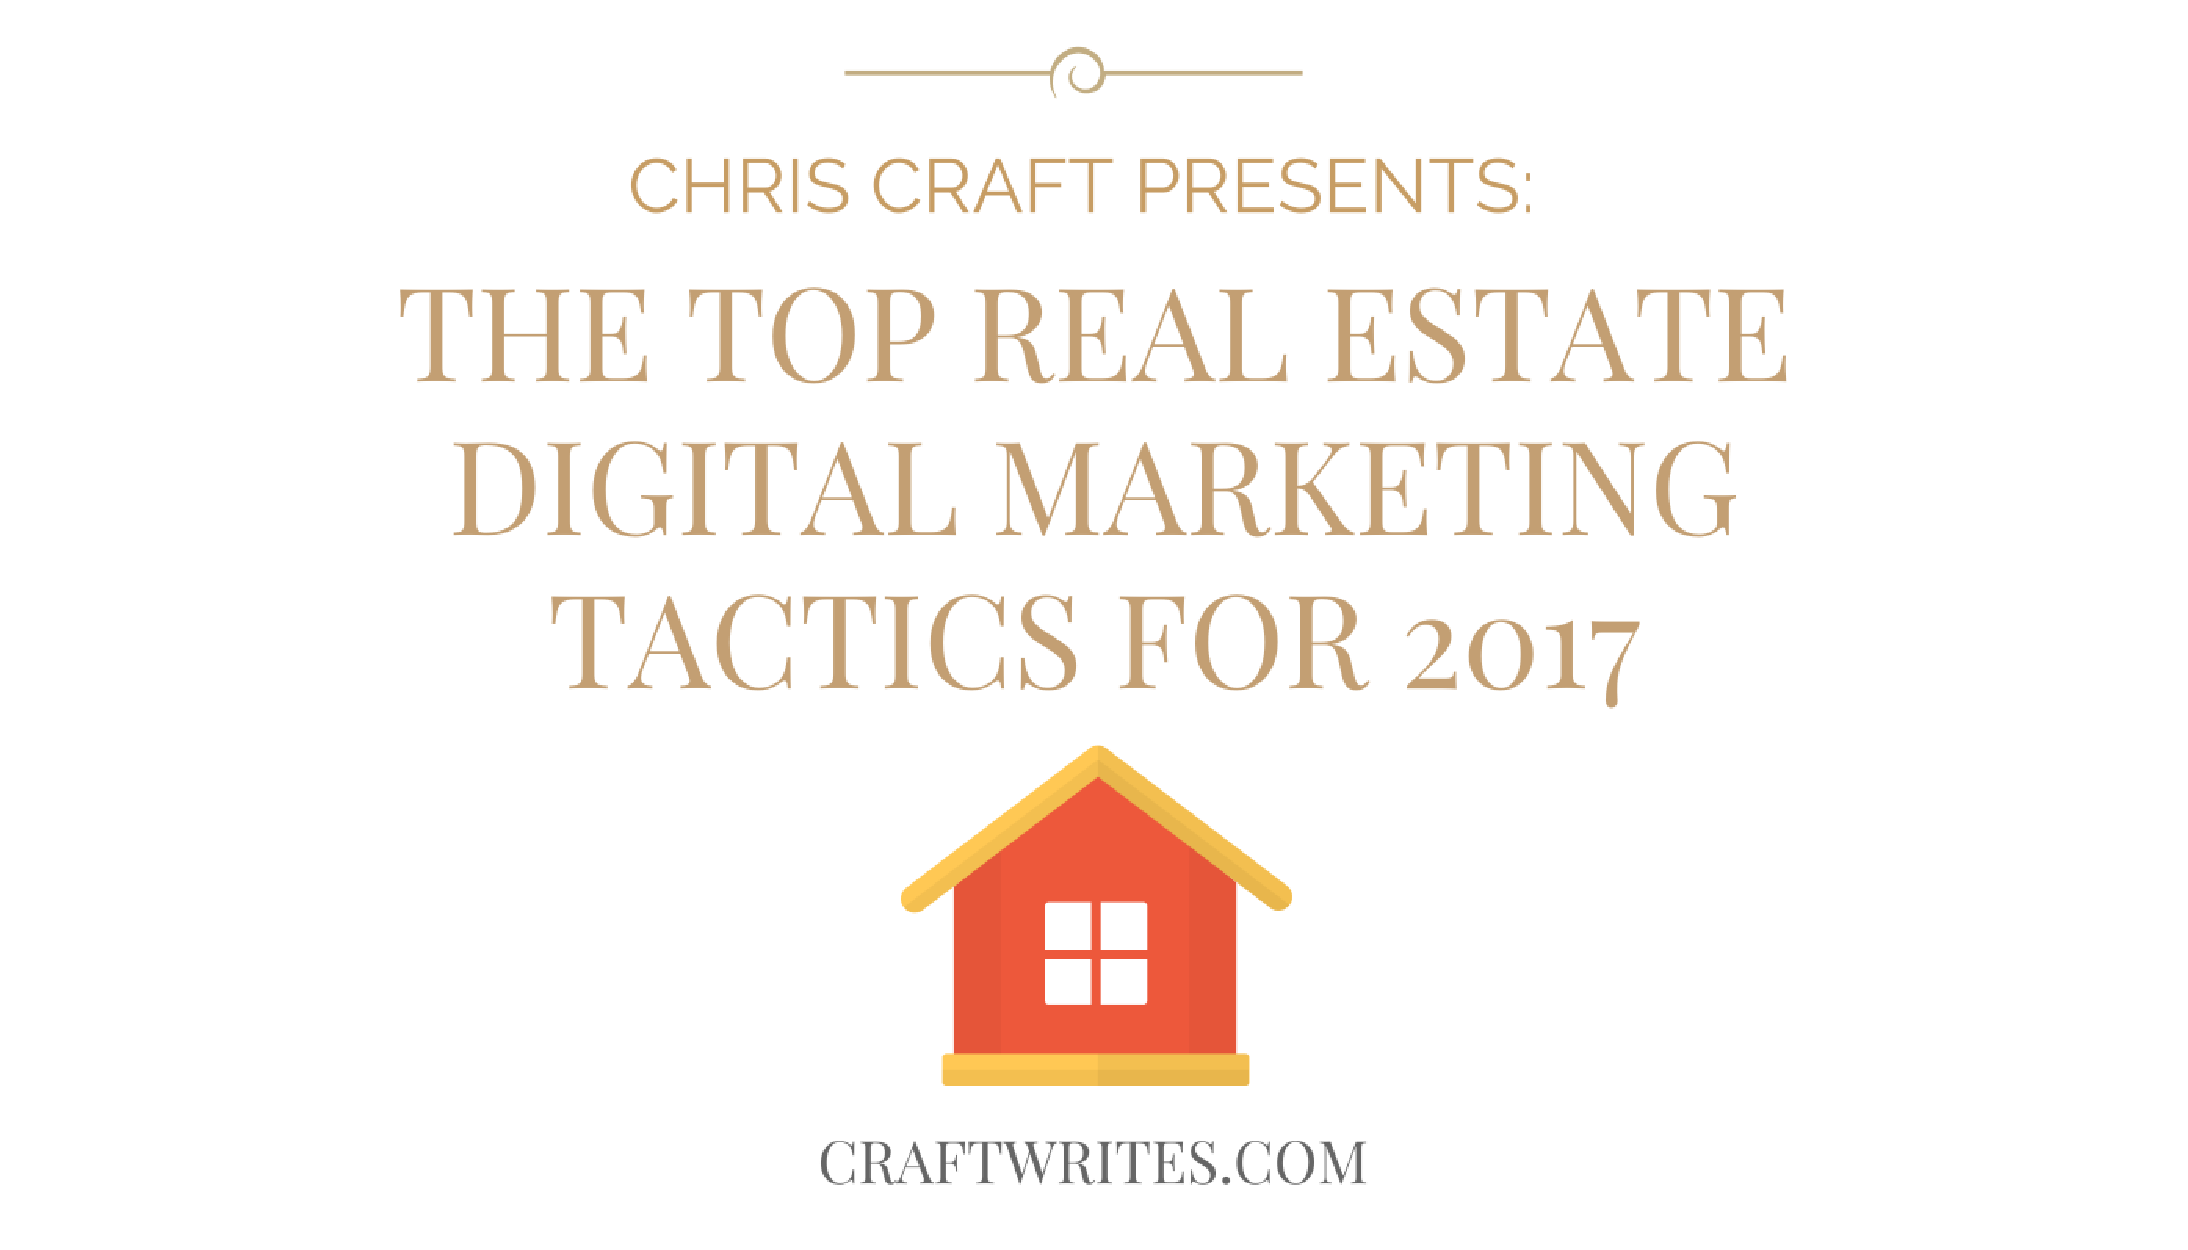 The top real estate digital marketing tactics for 2017